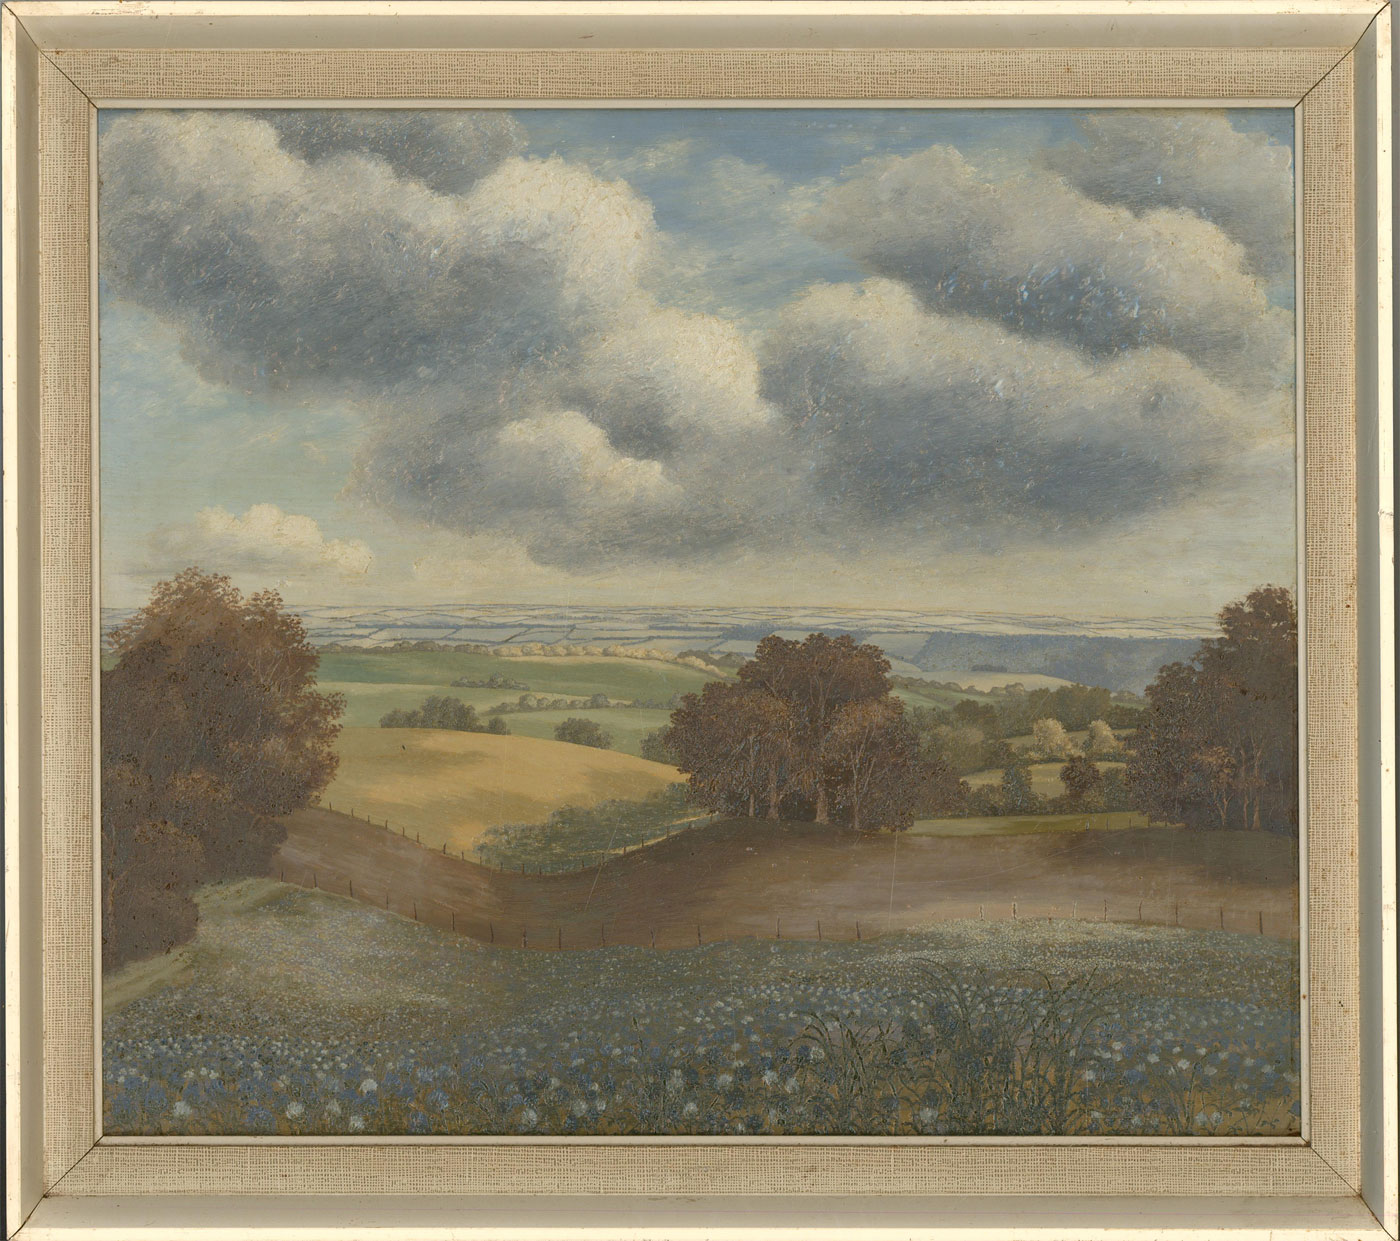 Ronald A. Broad - 1961 Oil, Landscape from Cross Lanes